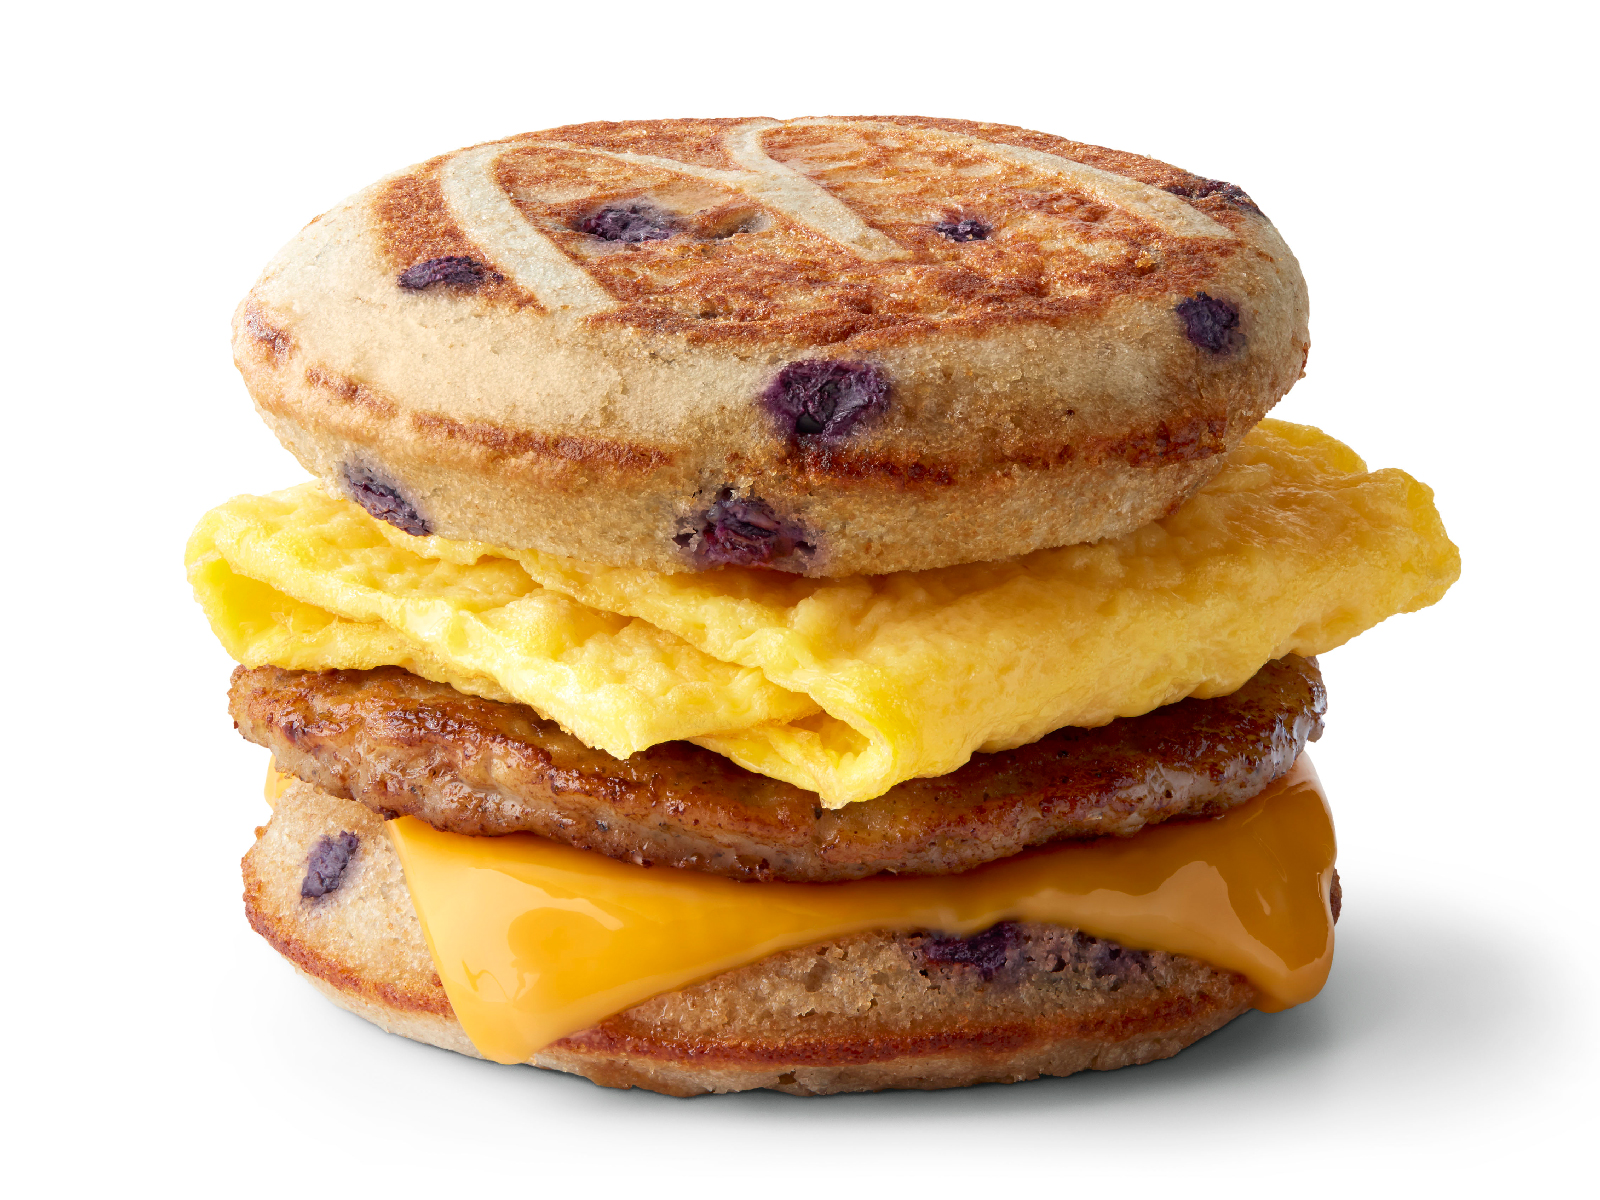 bluebery-mcgriddle-FT-BLOG0719.jpg